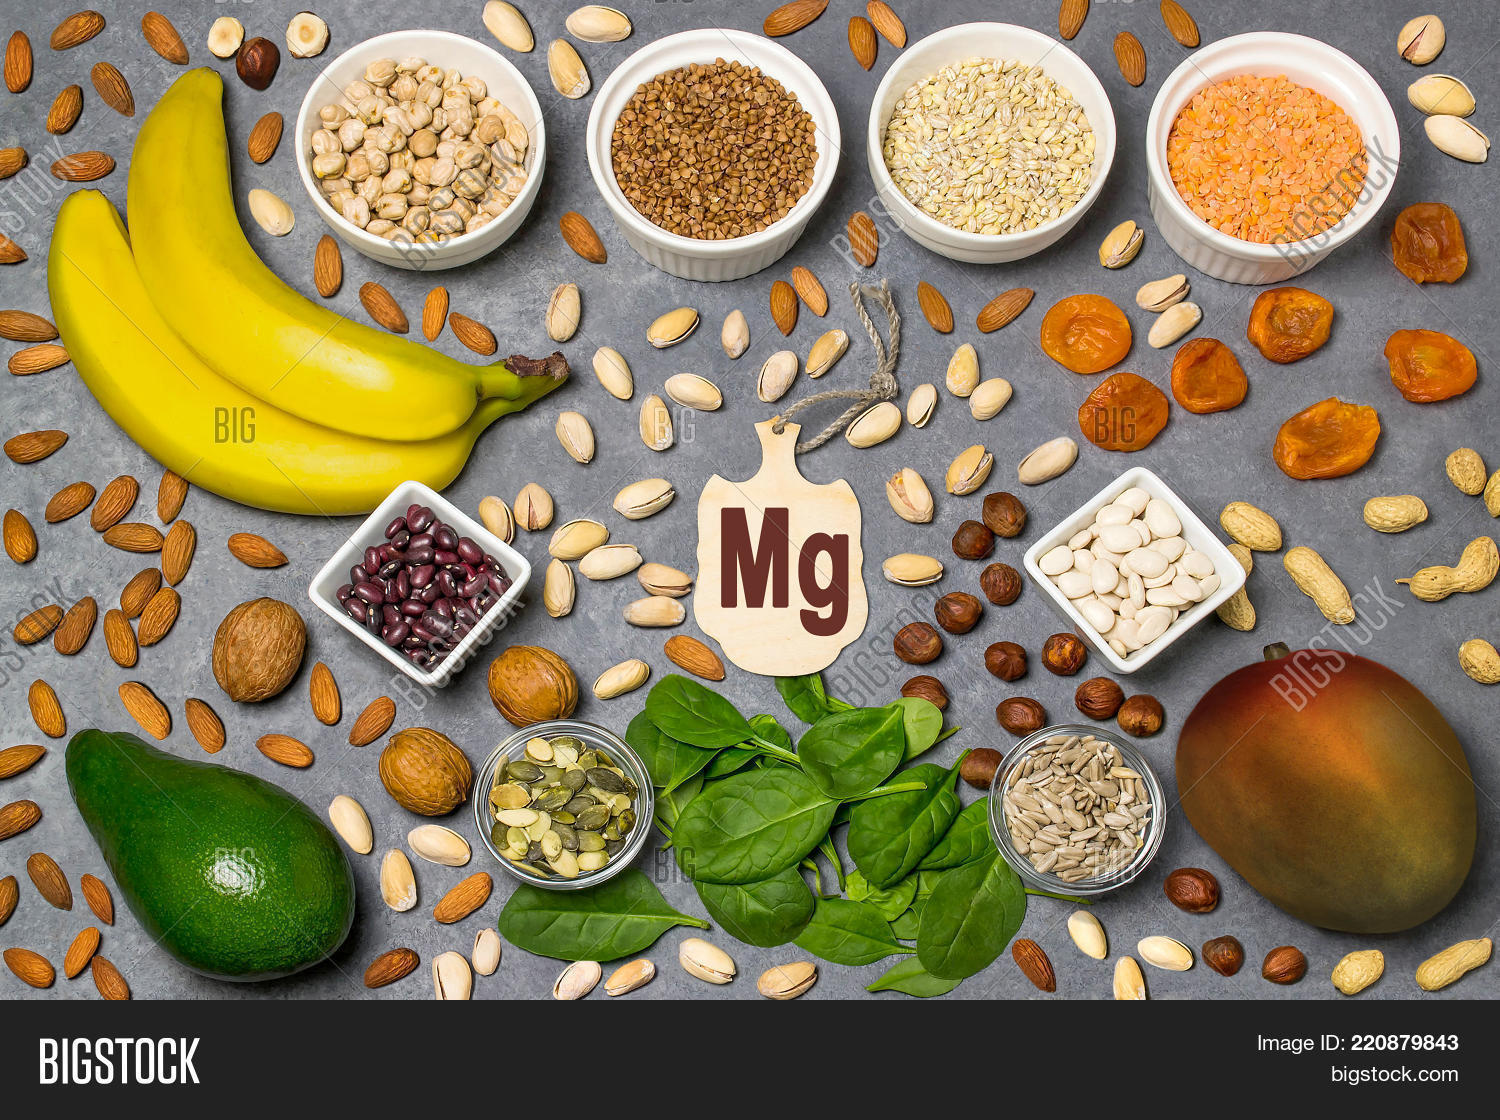 almond,apricots,avitaminosis,avocado,balanced,banana,barley,bio,buckwheat,chickpeas,collection,concept,diet,dried,eating,food,fresh,group,healthy,important,ingredient,lentil,lifestyle,magnesium,mango,metabolism,natural,nutrient,object,organic,peanut,pearl,peas,pistachio,prevention,pumpkin,rich,seeds,set,source,sunflower,tag,useful,various,vitamin